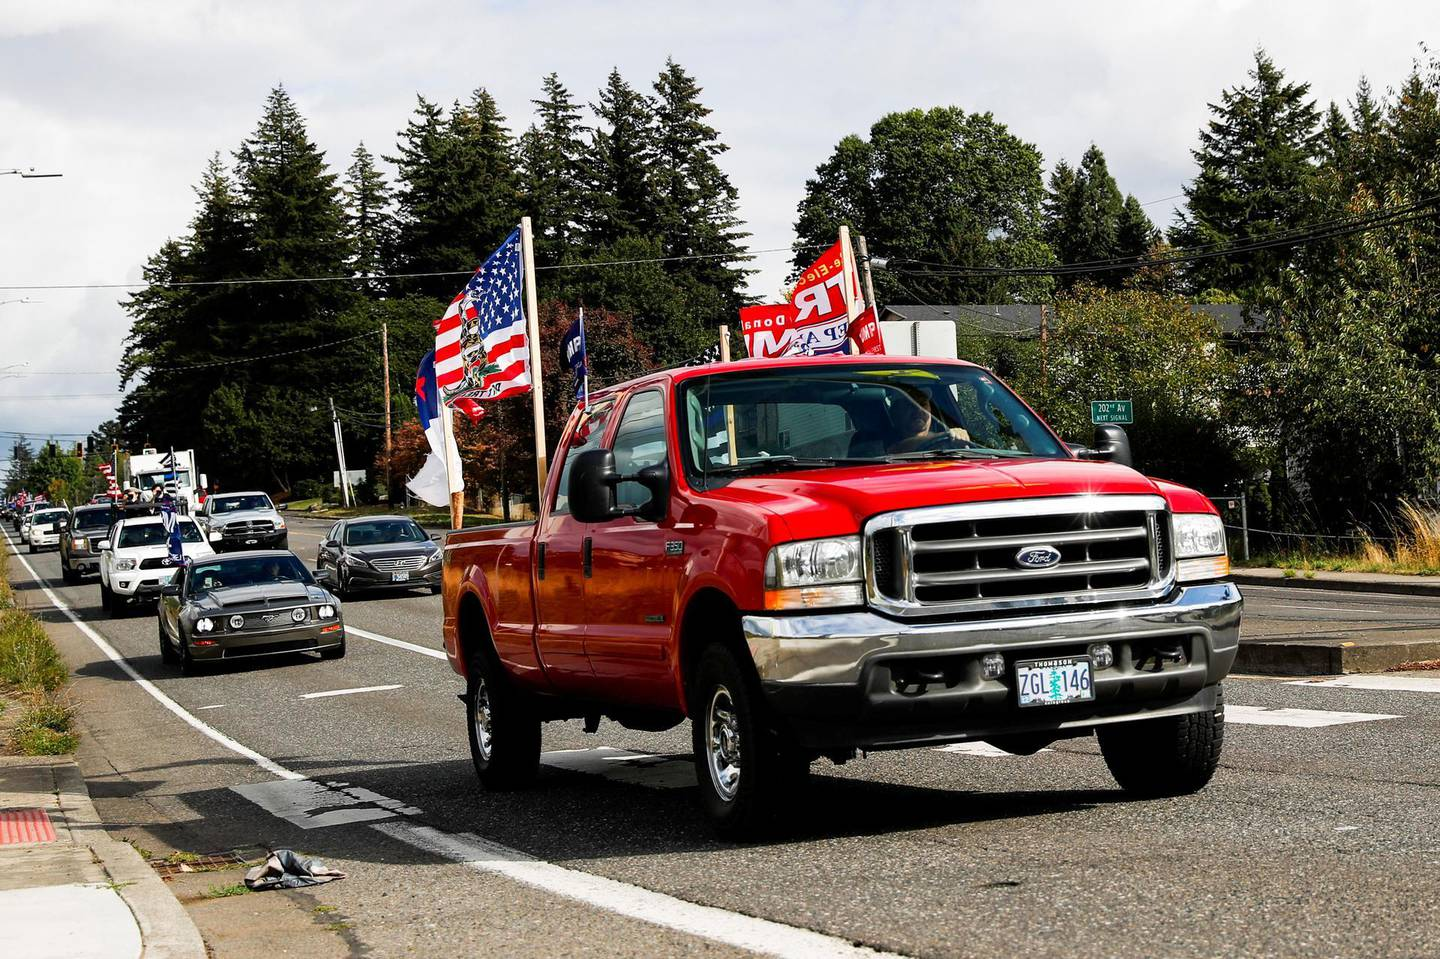 People take part in a motorcade for supporting U.S. President Donald Trump, outside of Portland, Oregon, U.S., September 19, 2020. REUTERS/Shannon Stapleton